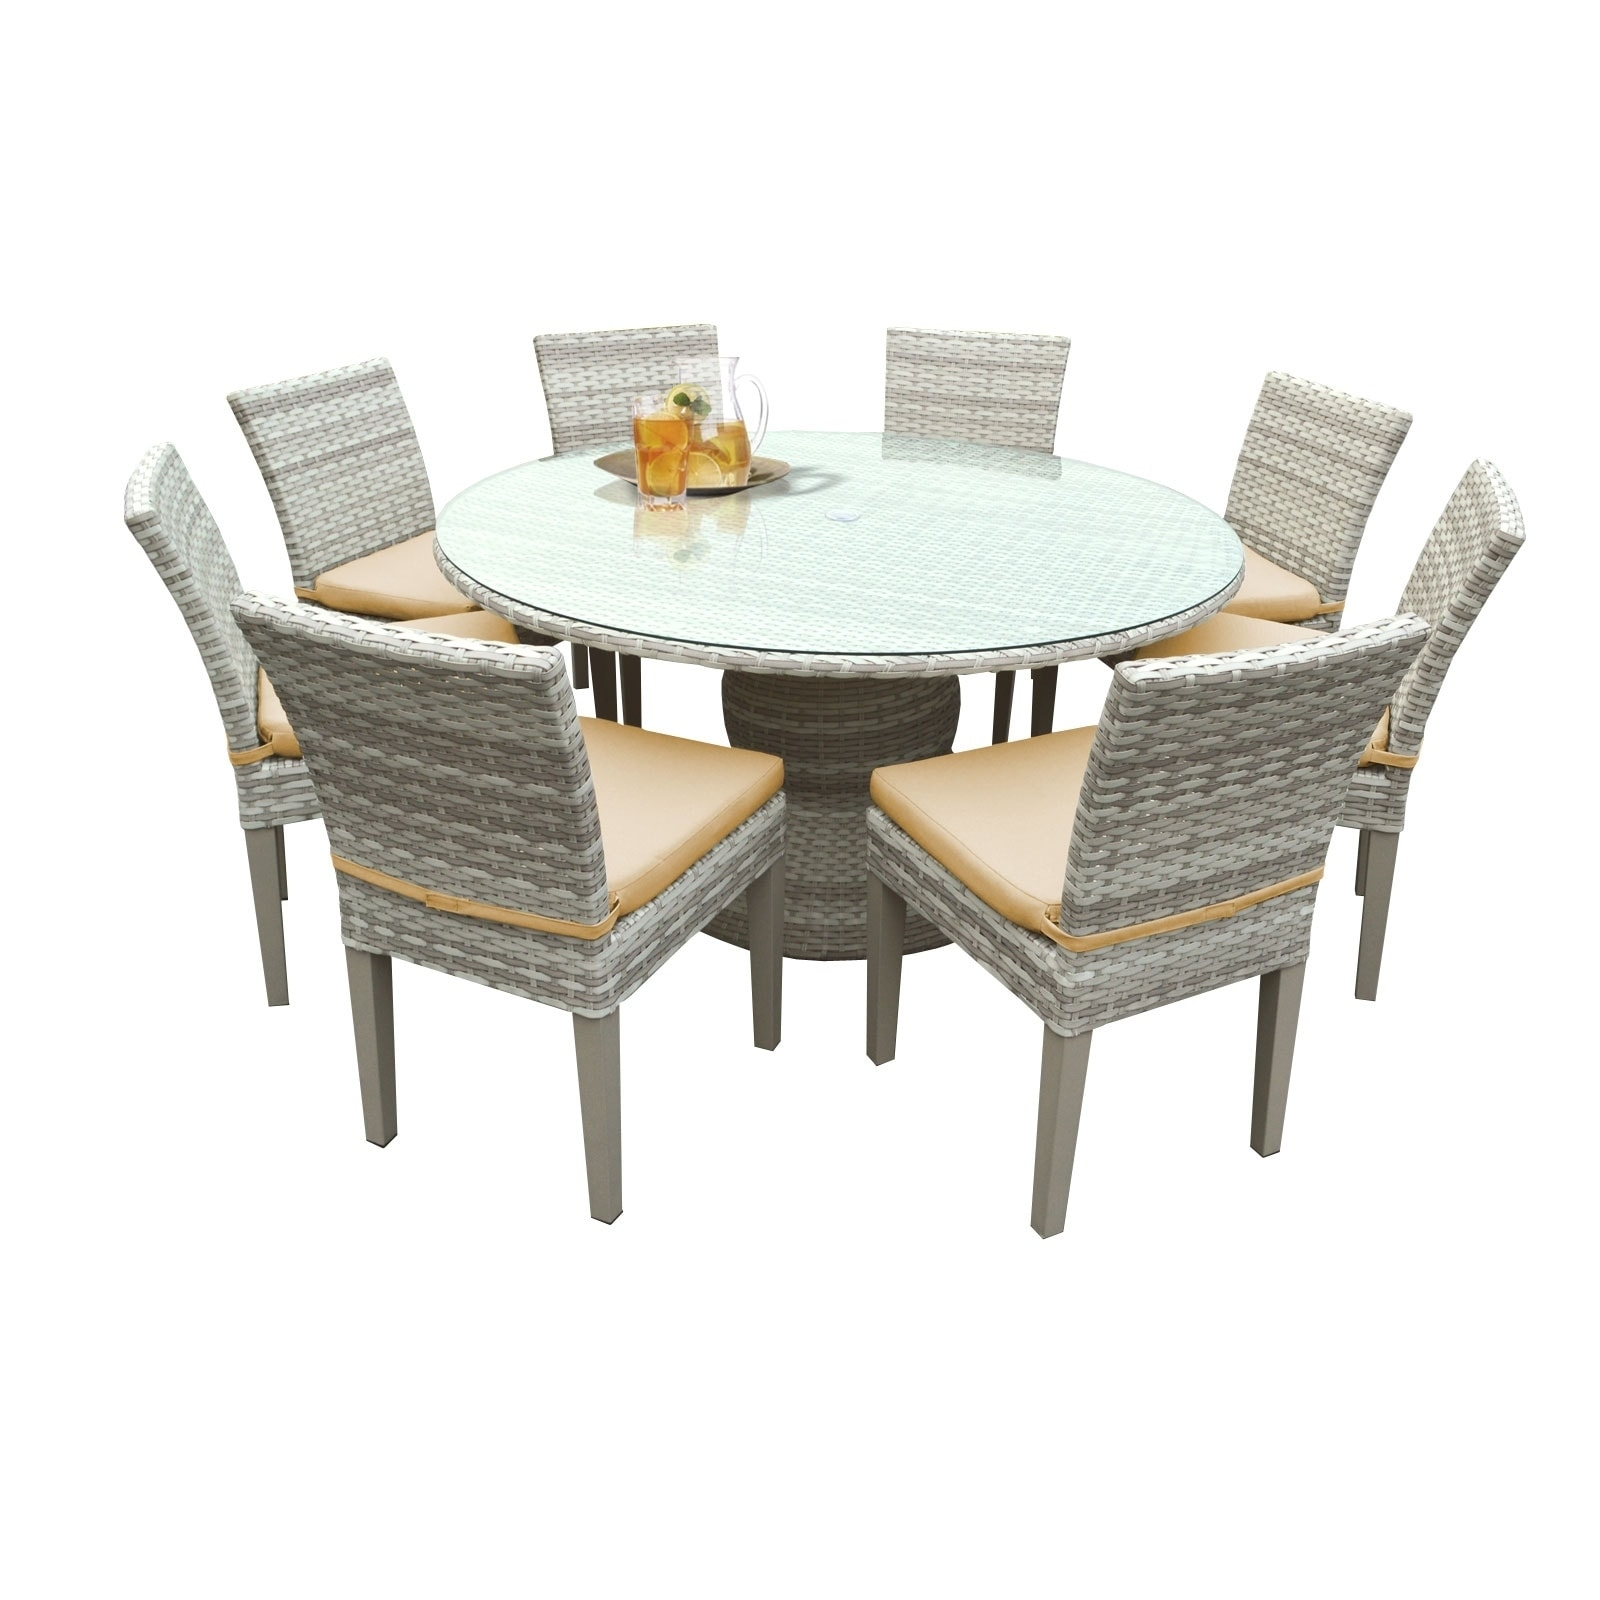 Shop catamaran outdoor patio round wicker dining table and 8 side chairs with seat cushions free shipping today overstock 17803857